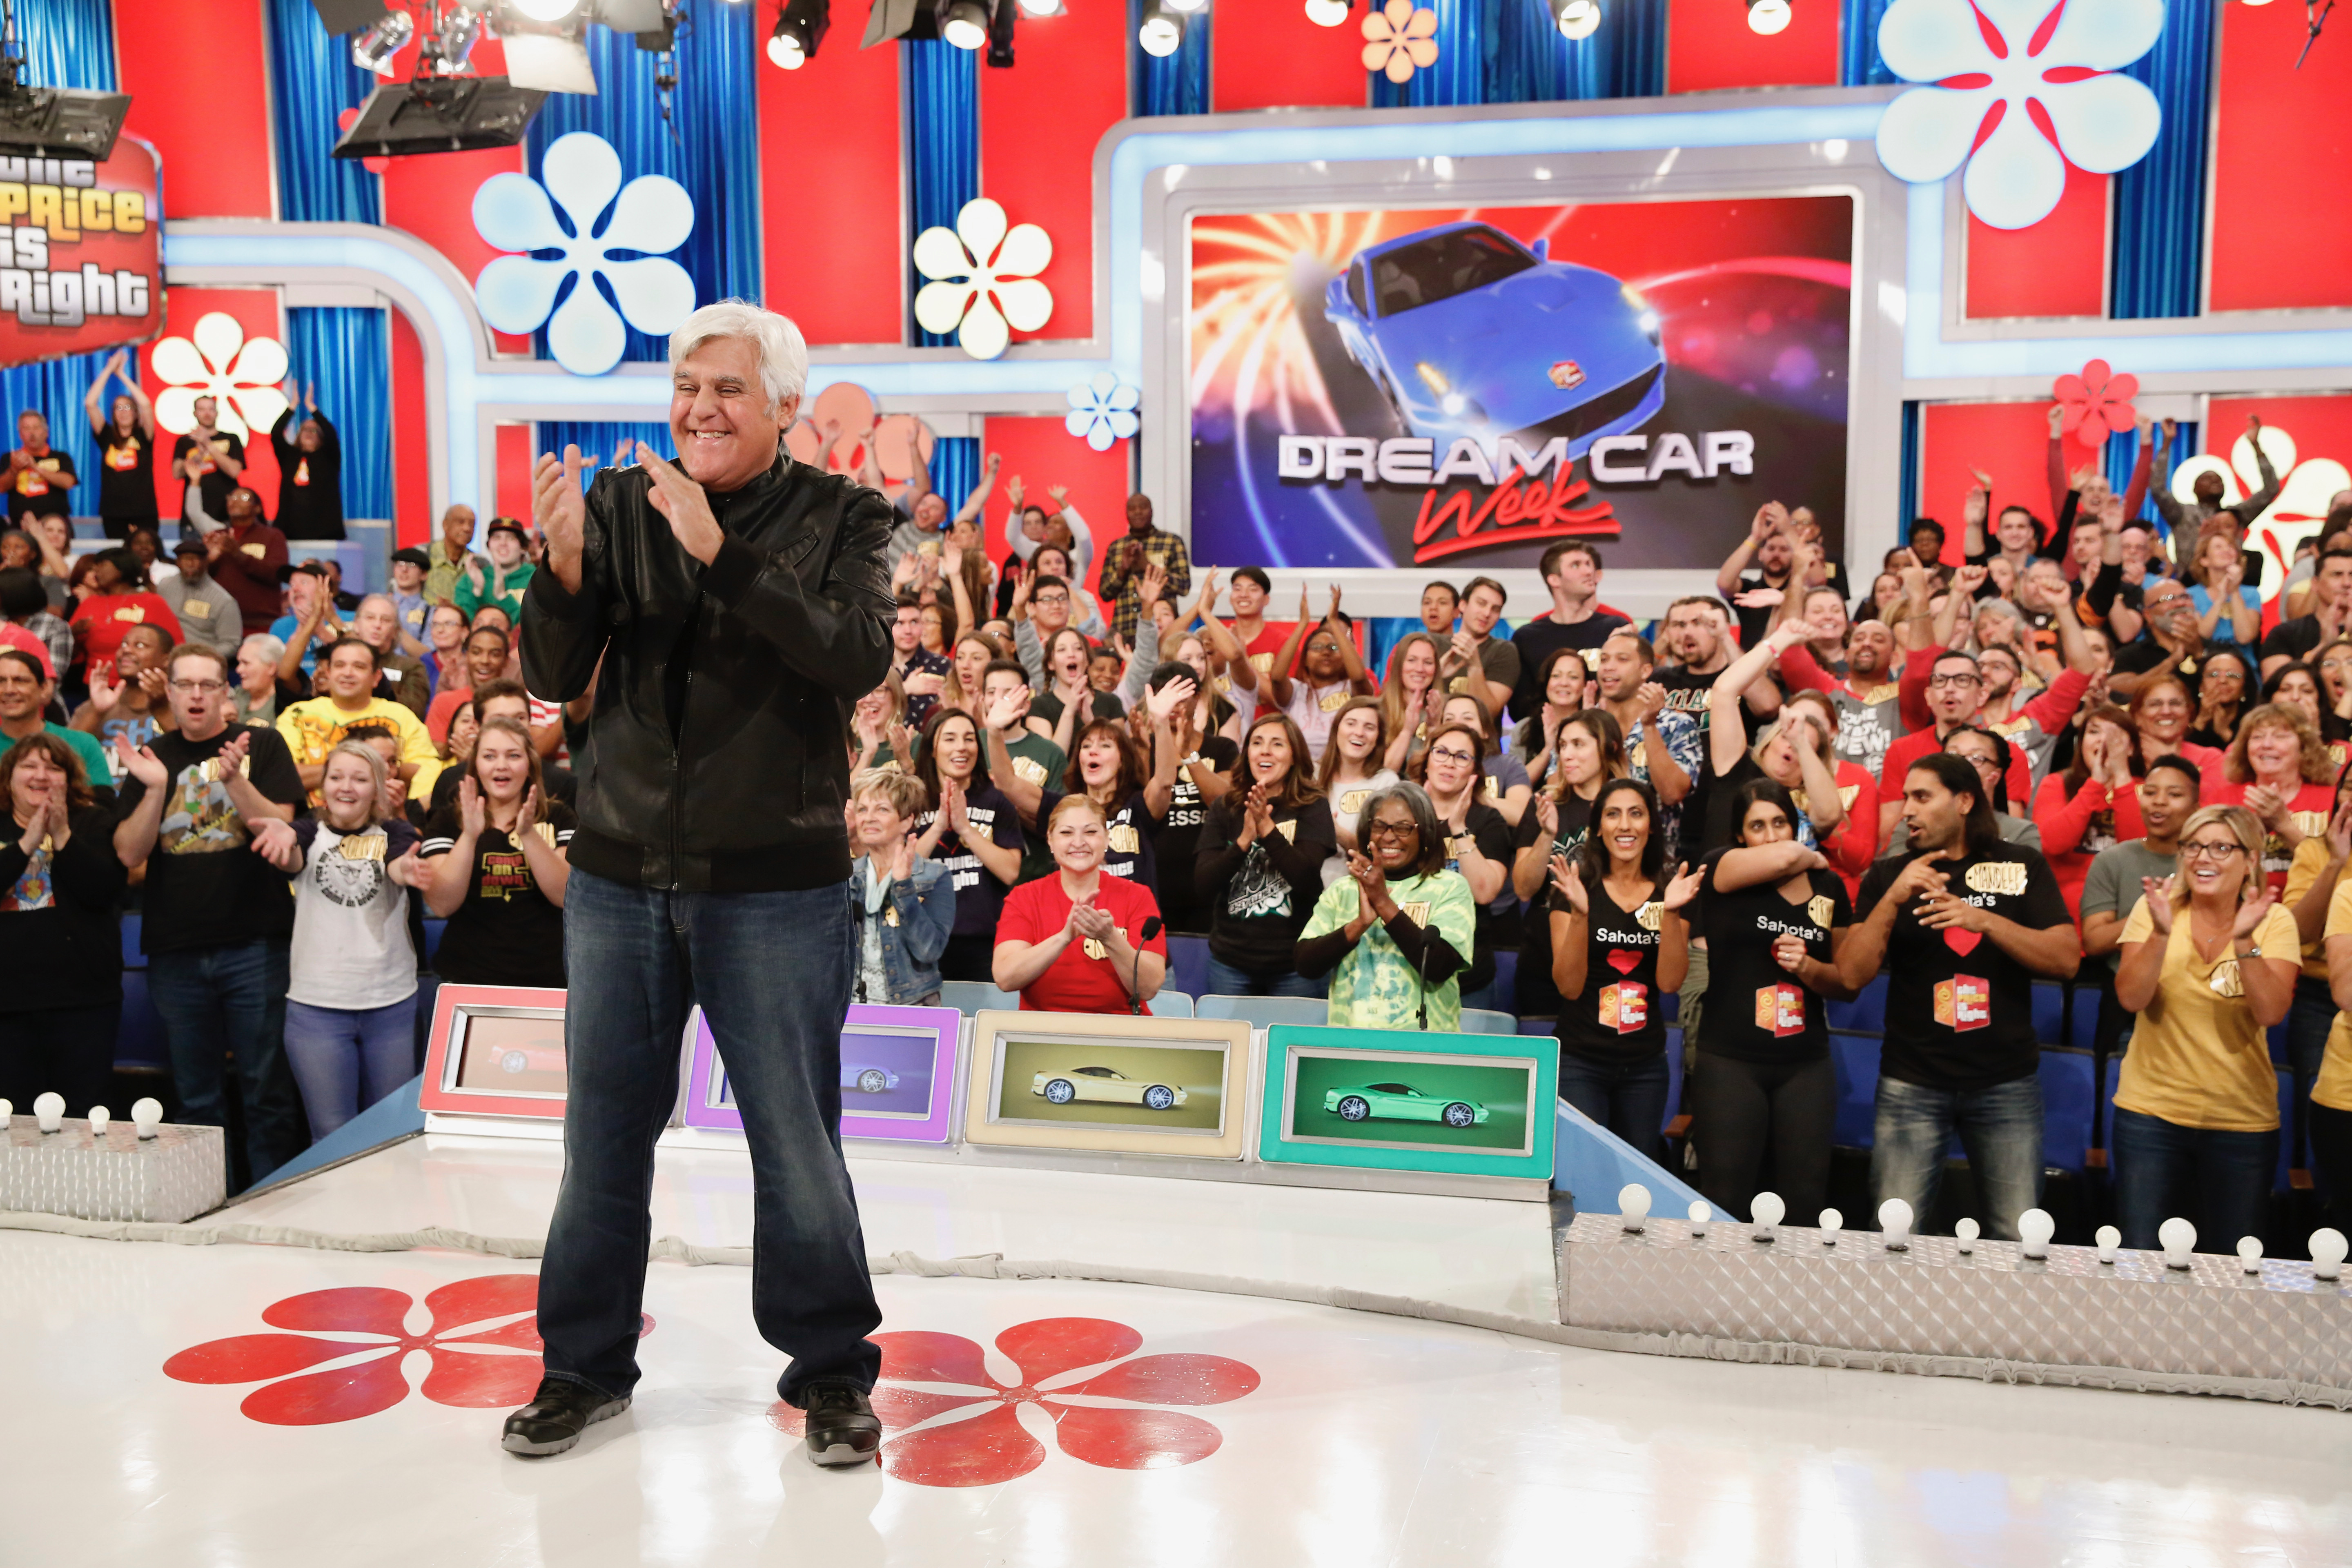 Jay Leno, Jay Leno to visit 'The Price Is Right', ClassicCars.com Journal